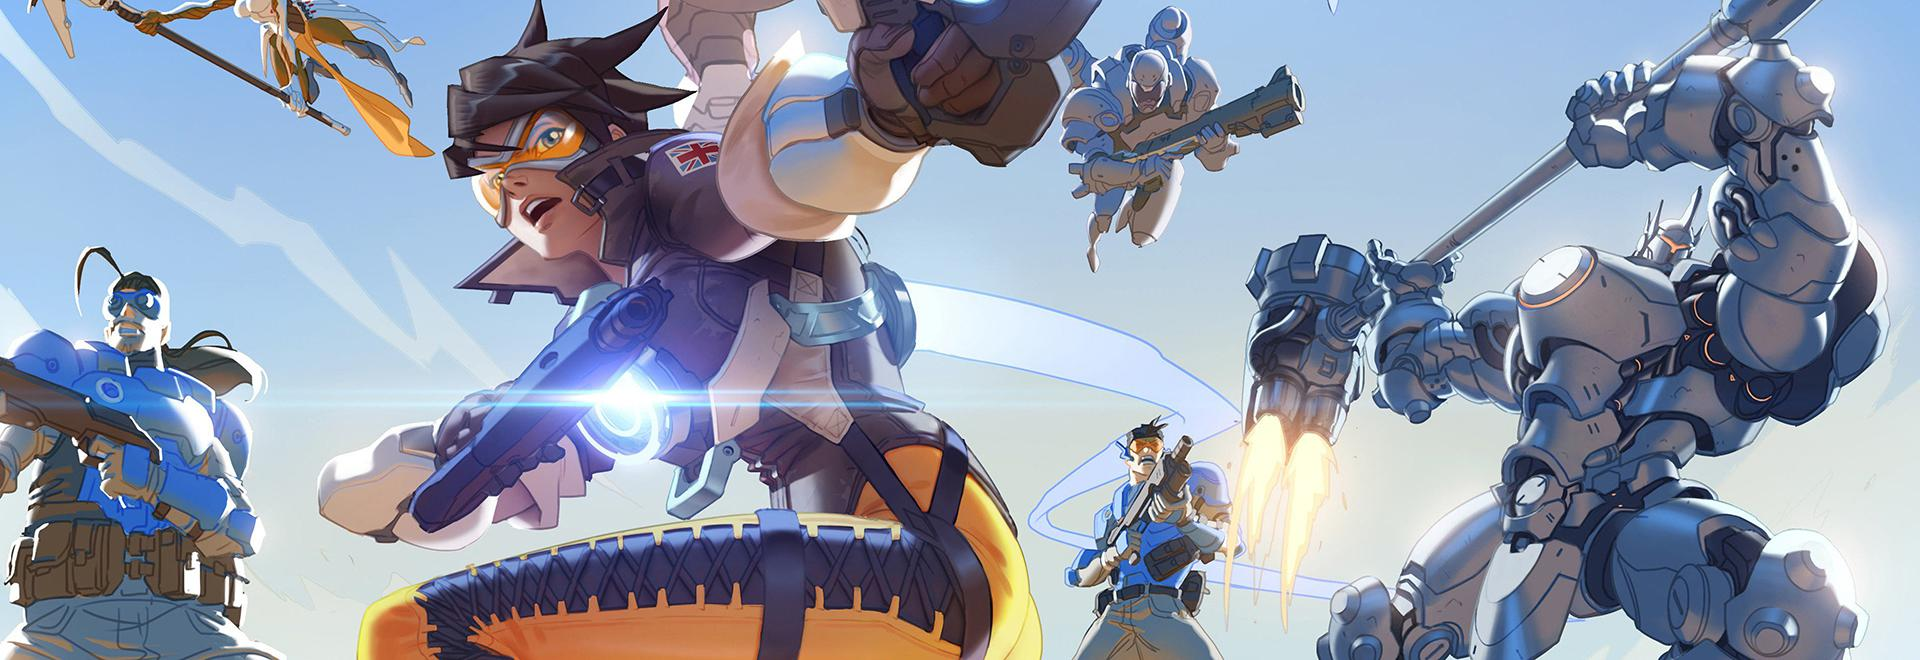 Overwatch Feature Image